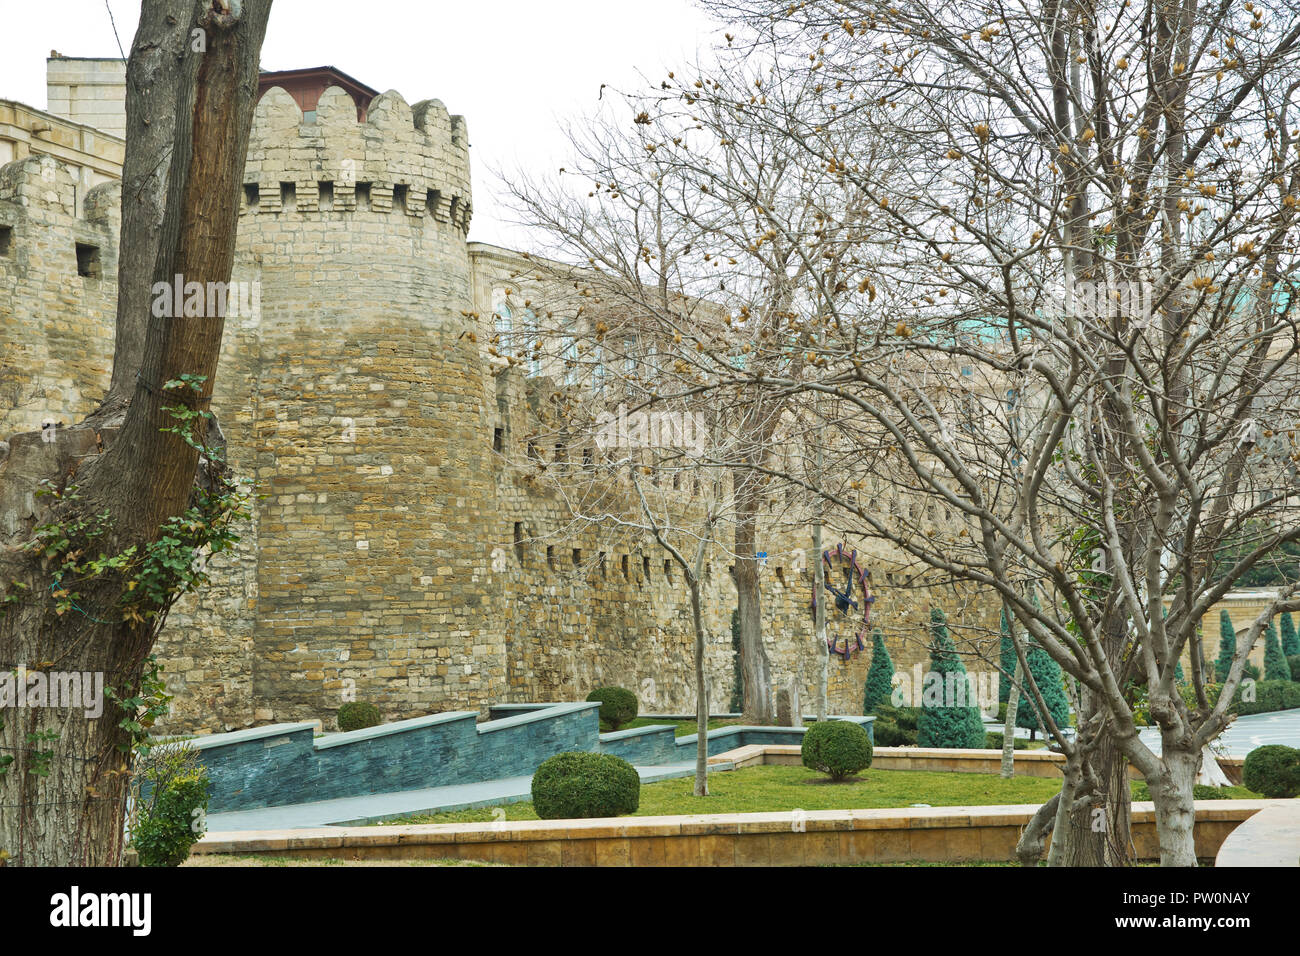 Icheri Sheher in Baku. Azerbaijan . Gate of the old fortress, entrance to Baku old town. Baku, Azerbaijan. Walls of the Old City in Baku . - Stock Image